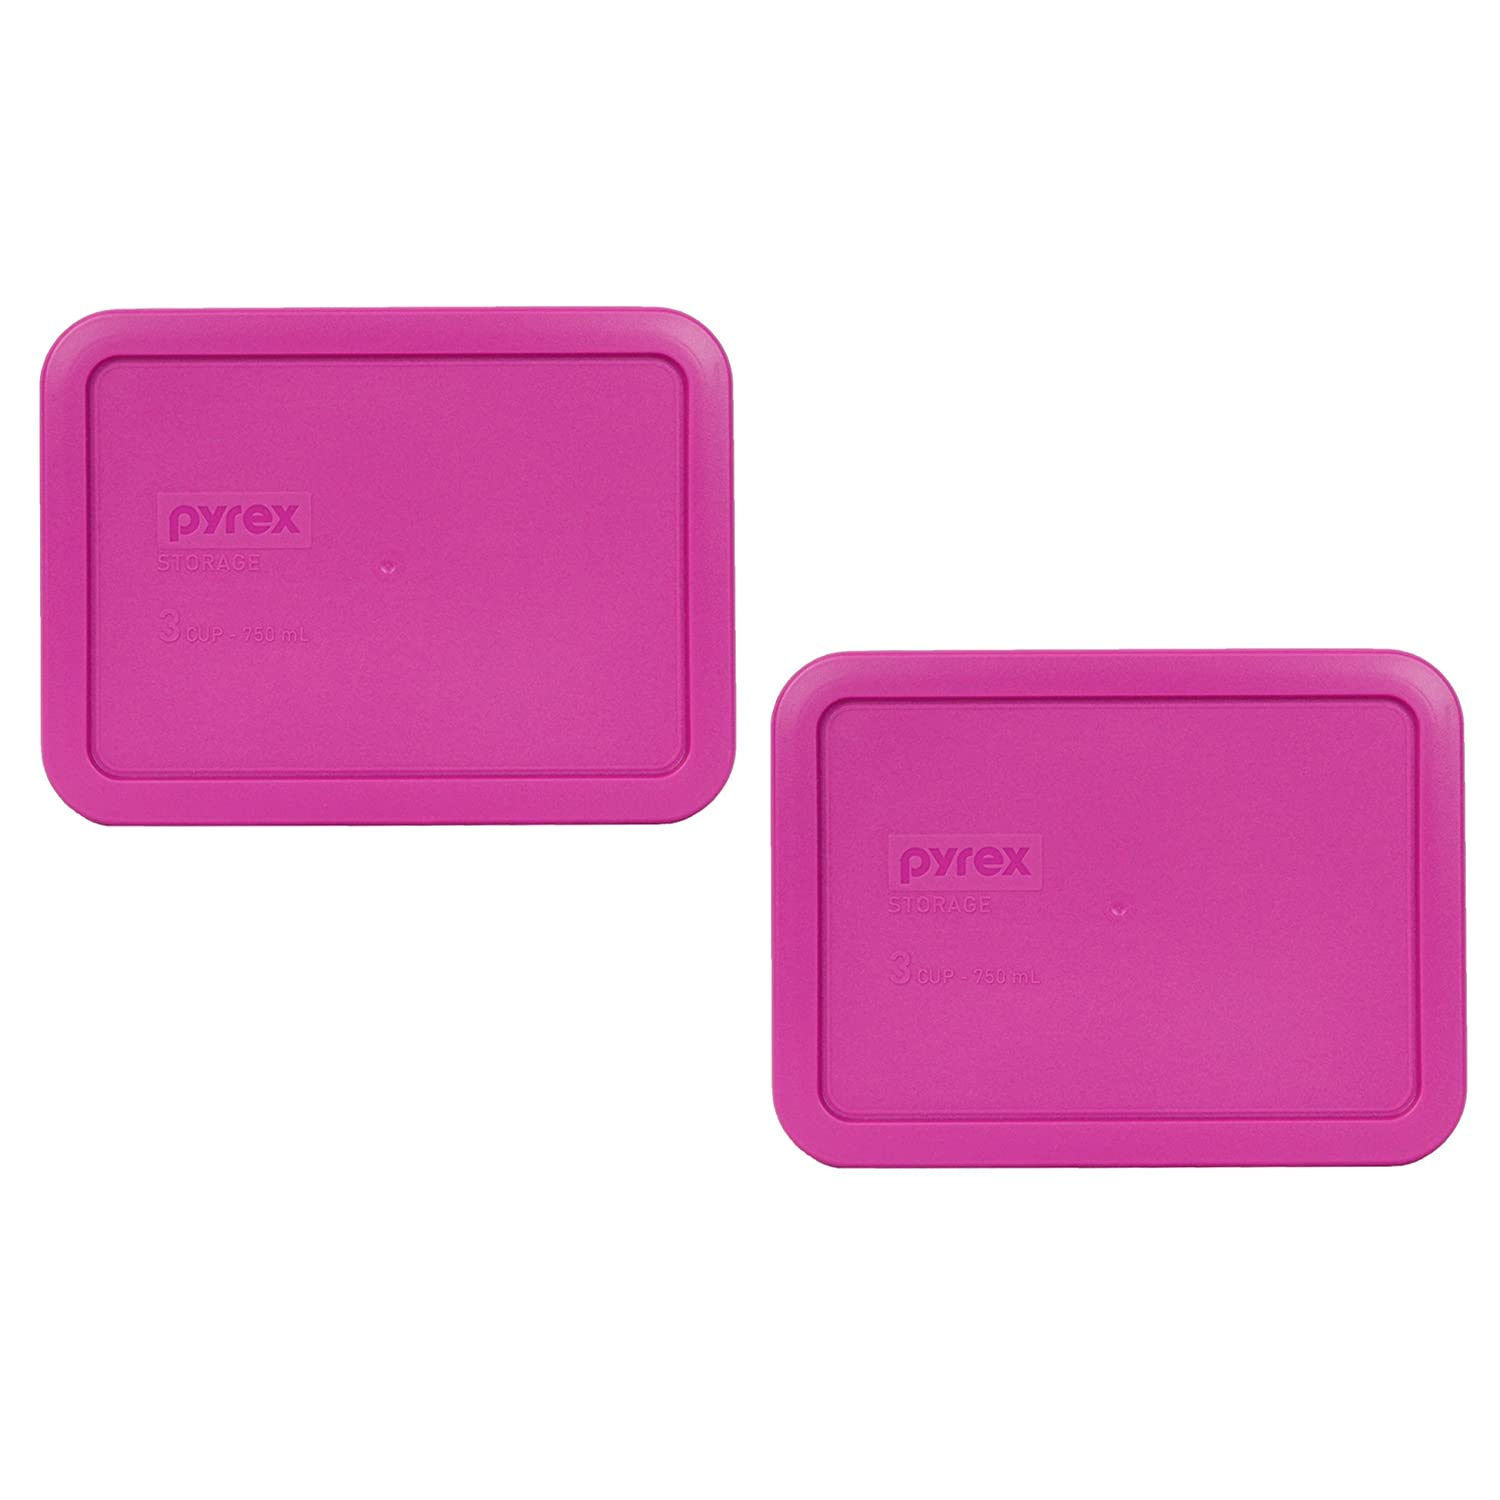 Pyrex 7210-PC 3 Cup Berry Pink Rectangle Plastic Food Storage Lid - 2 Pack